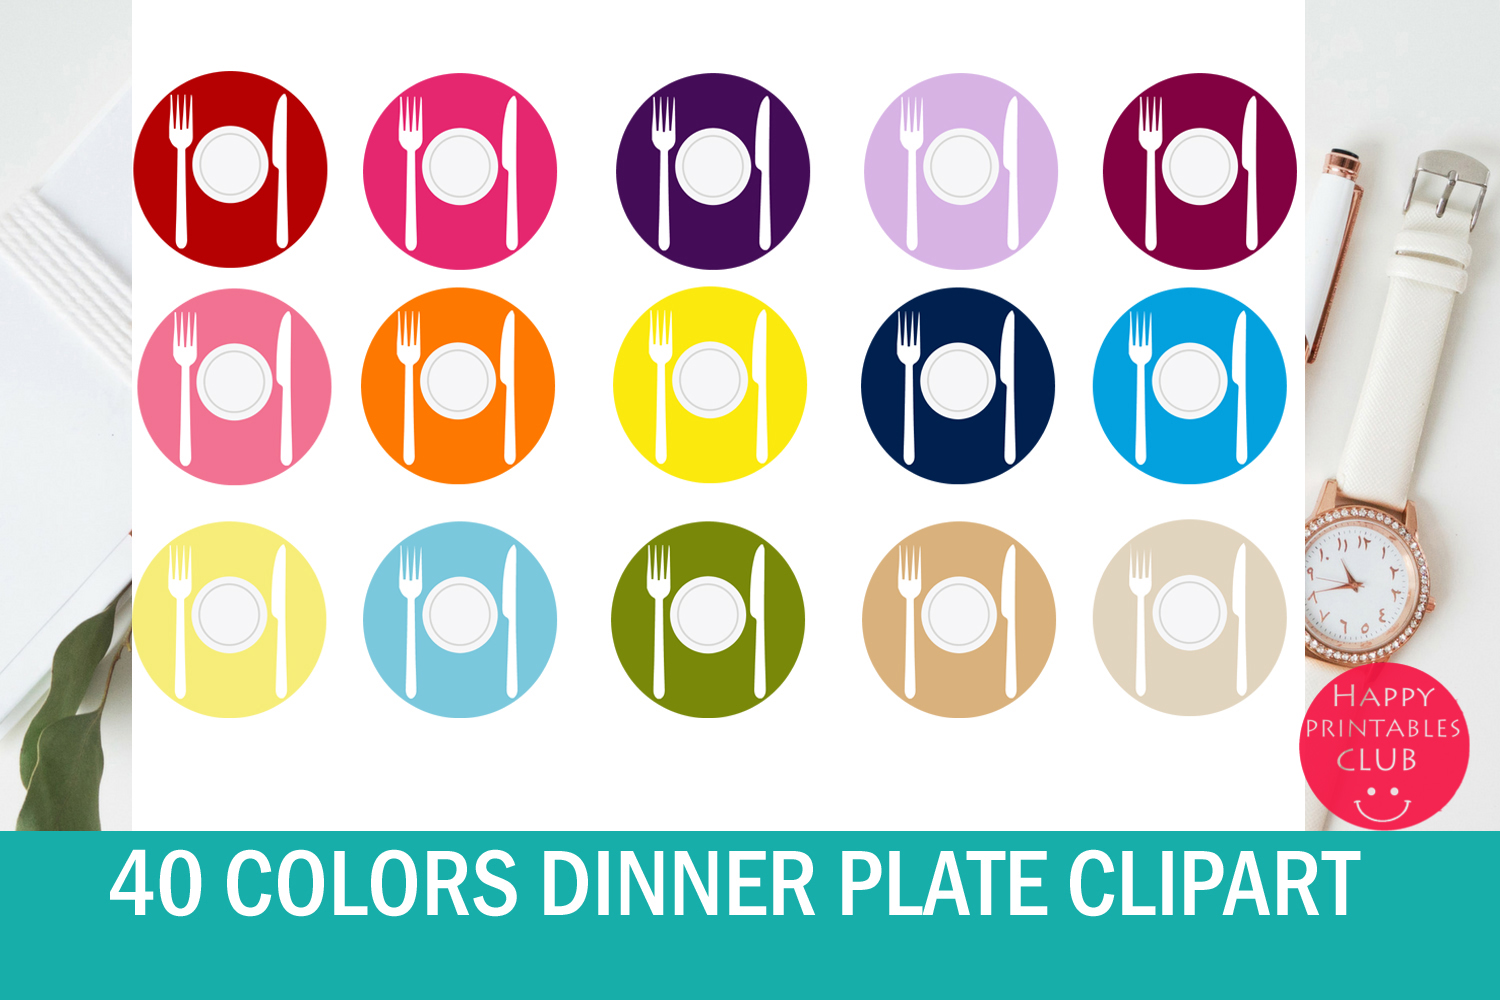 Download Free Dinner Plate Clipart Colored Plates Graphic By Happy Printables for Cricut Explore, Silhouette and other cutting machines.